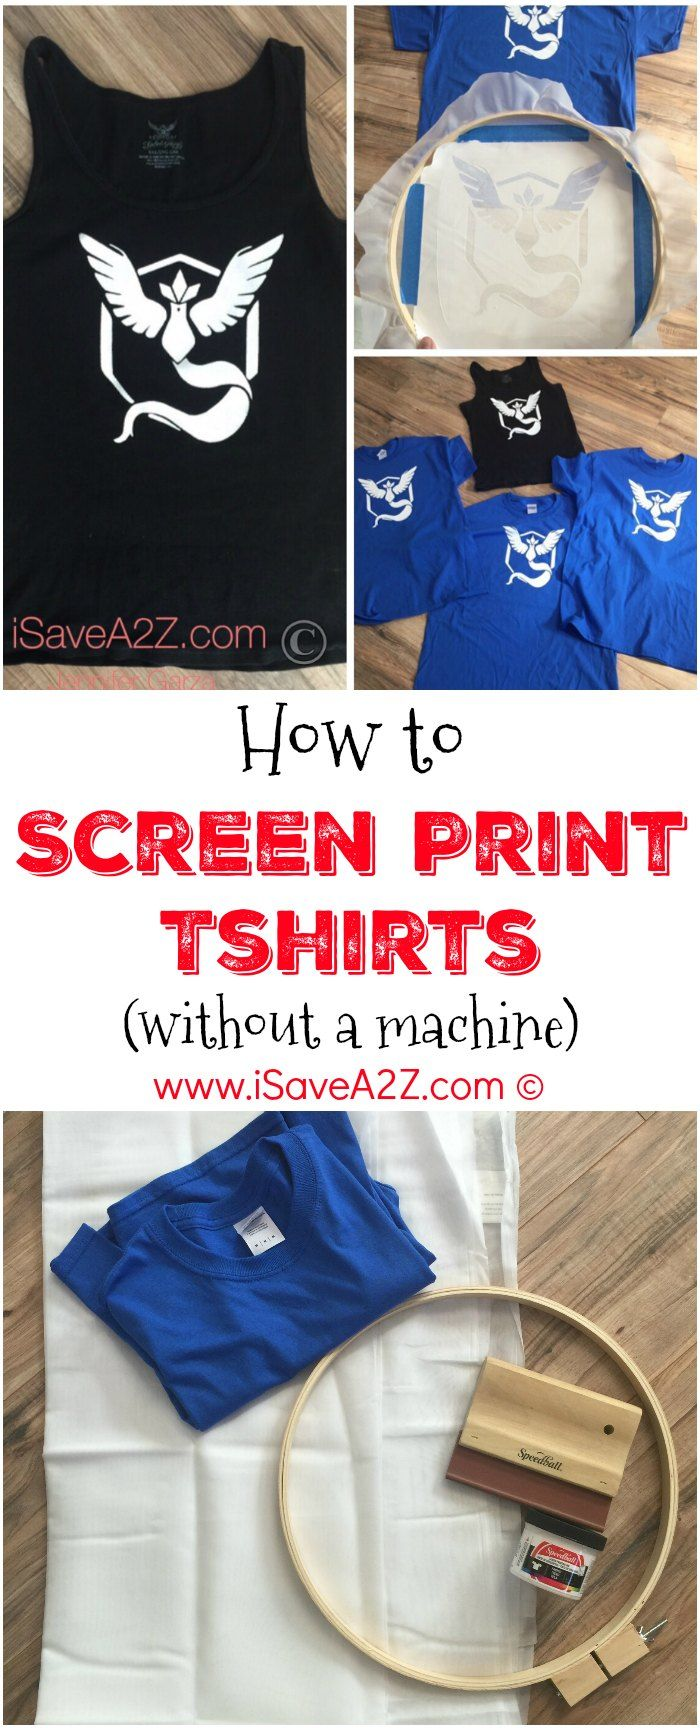 How to Screen Print tshirts without a machine - this is an excellent idea if you need to make personalize gifts!!!!